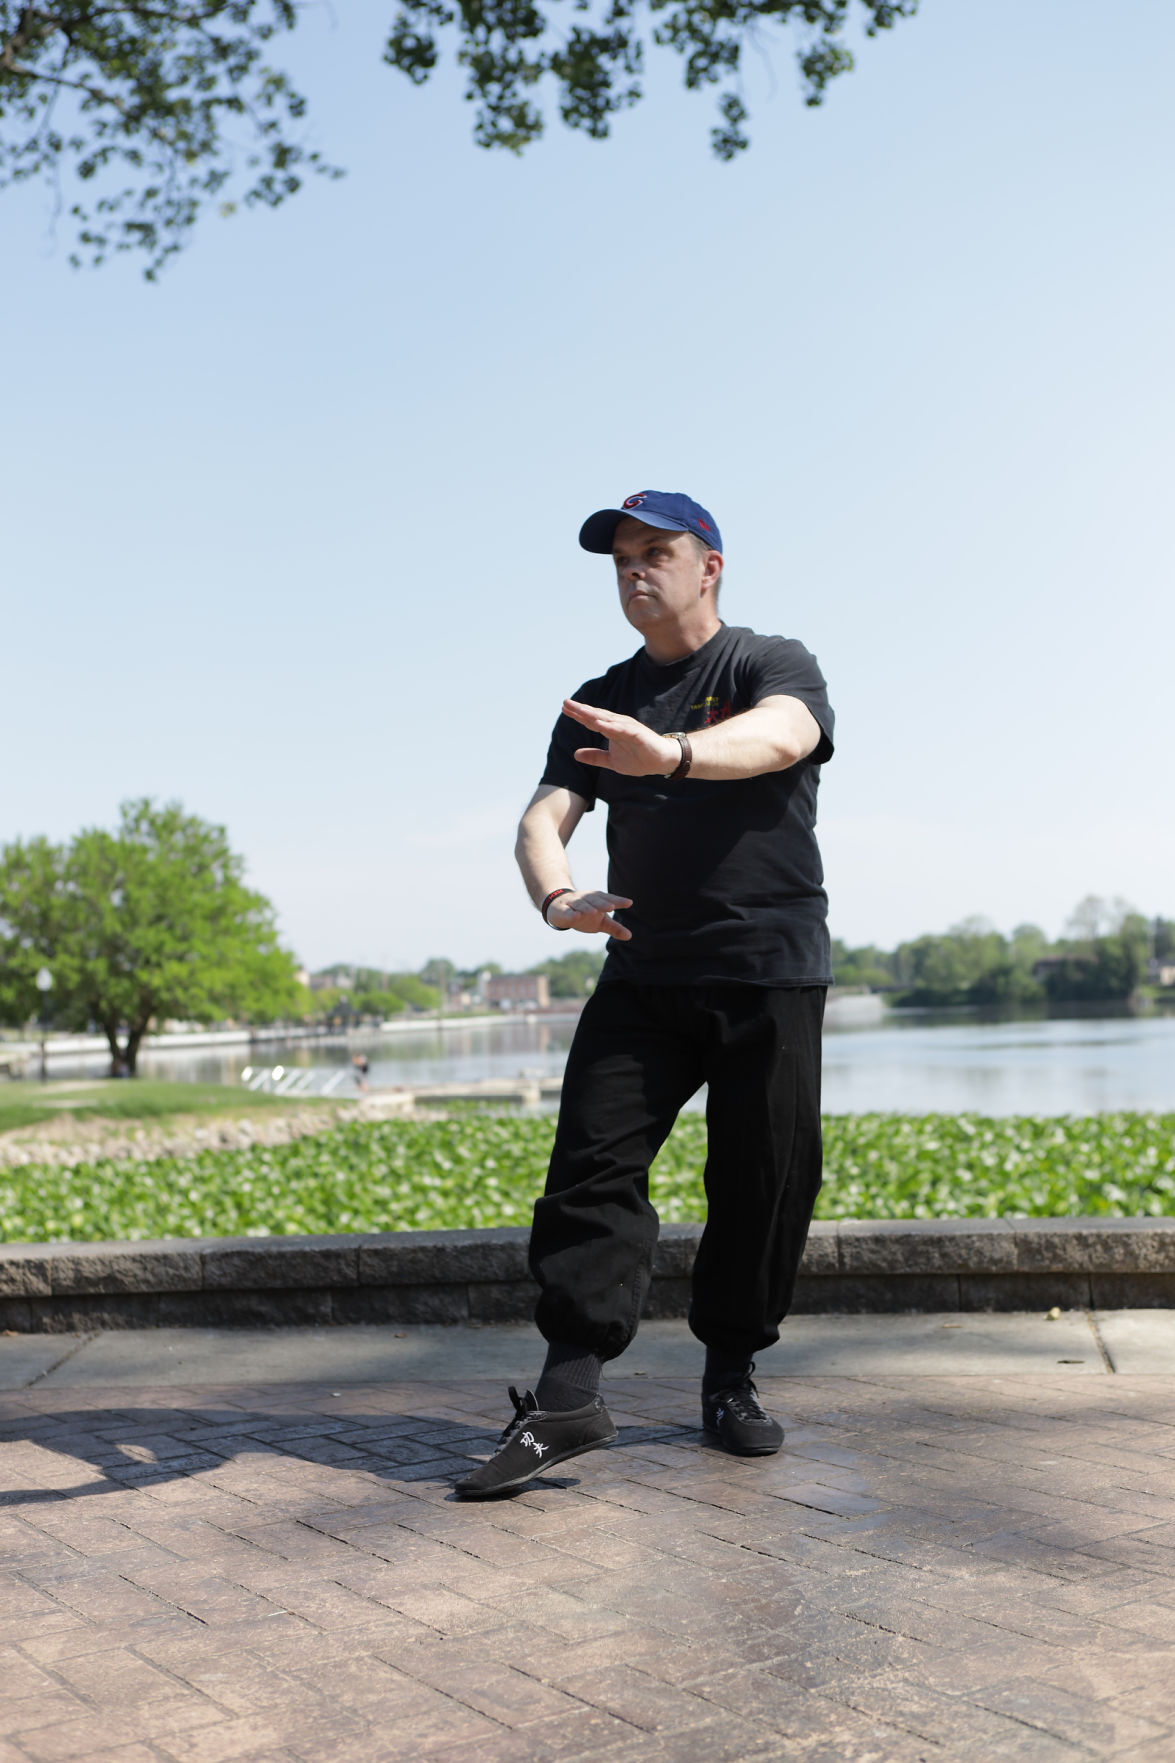 Ancient practice of tai chi holds key to physical and mental wellness